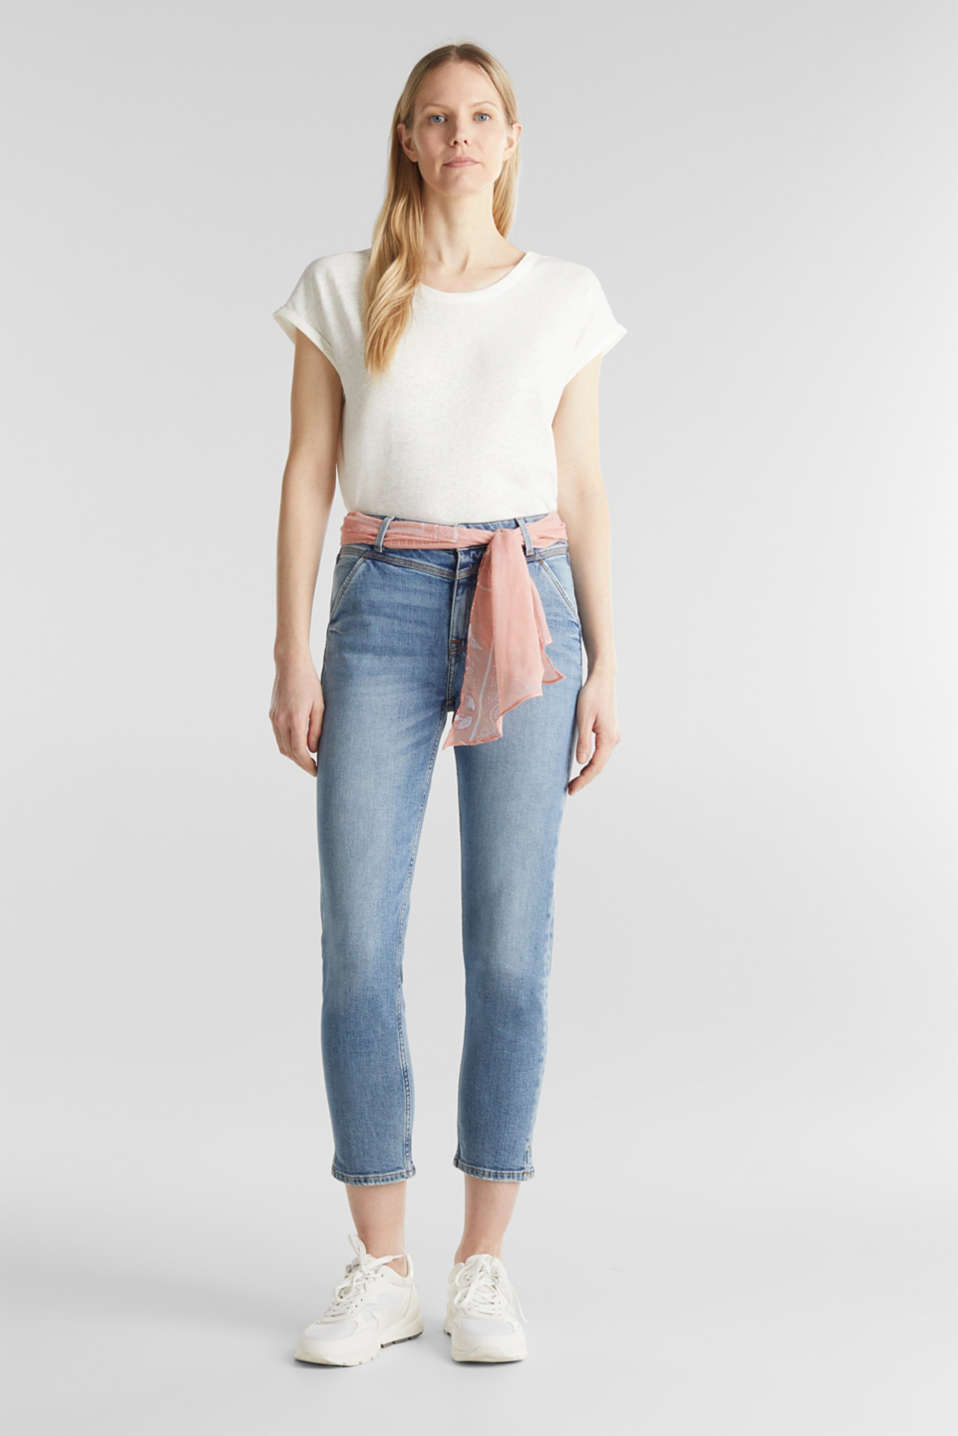 Esprit - Ankle-length jeans with a bandana